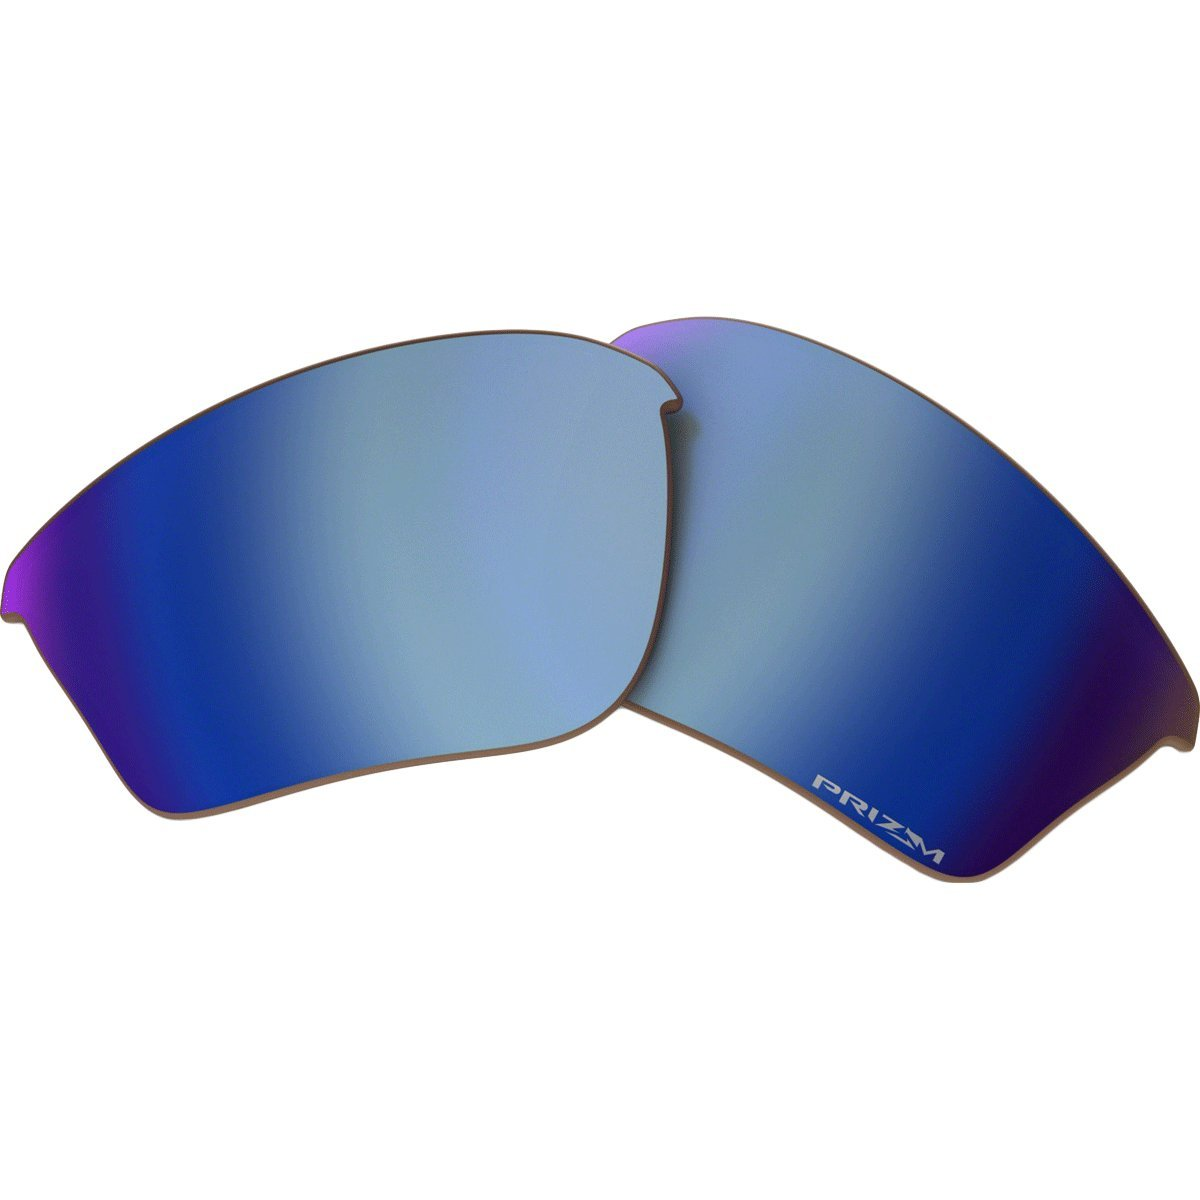 Oakley Half Jacket 2.0 XL Adult Replacement Lens Sunglass Accessories - Prizm Deep Water Polarized/One Size by Oakley